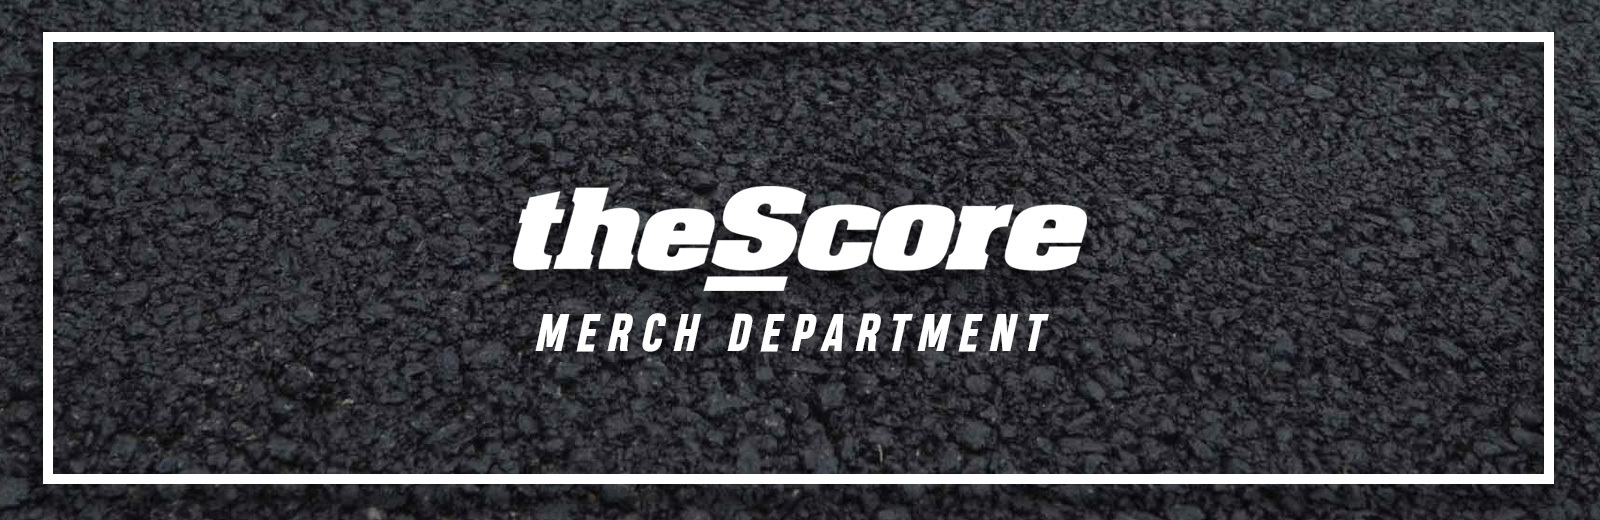 theScore Store